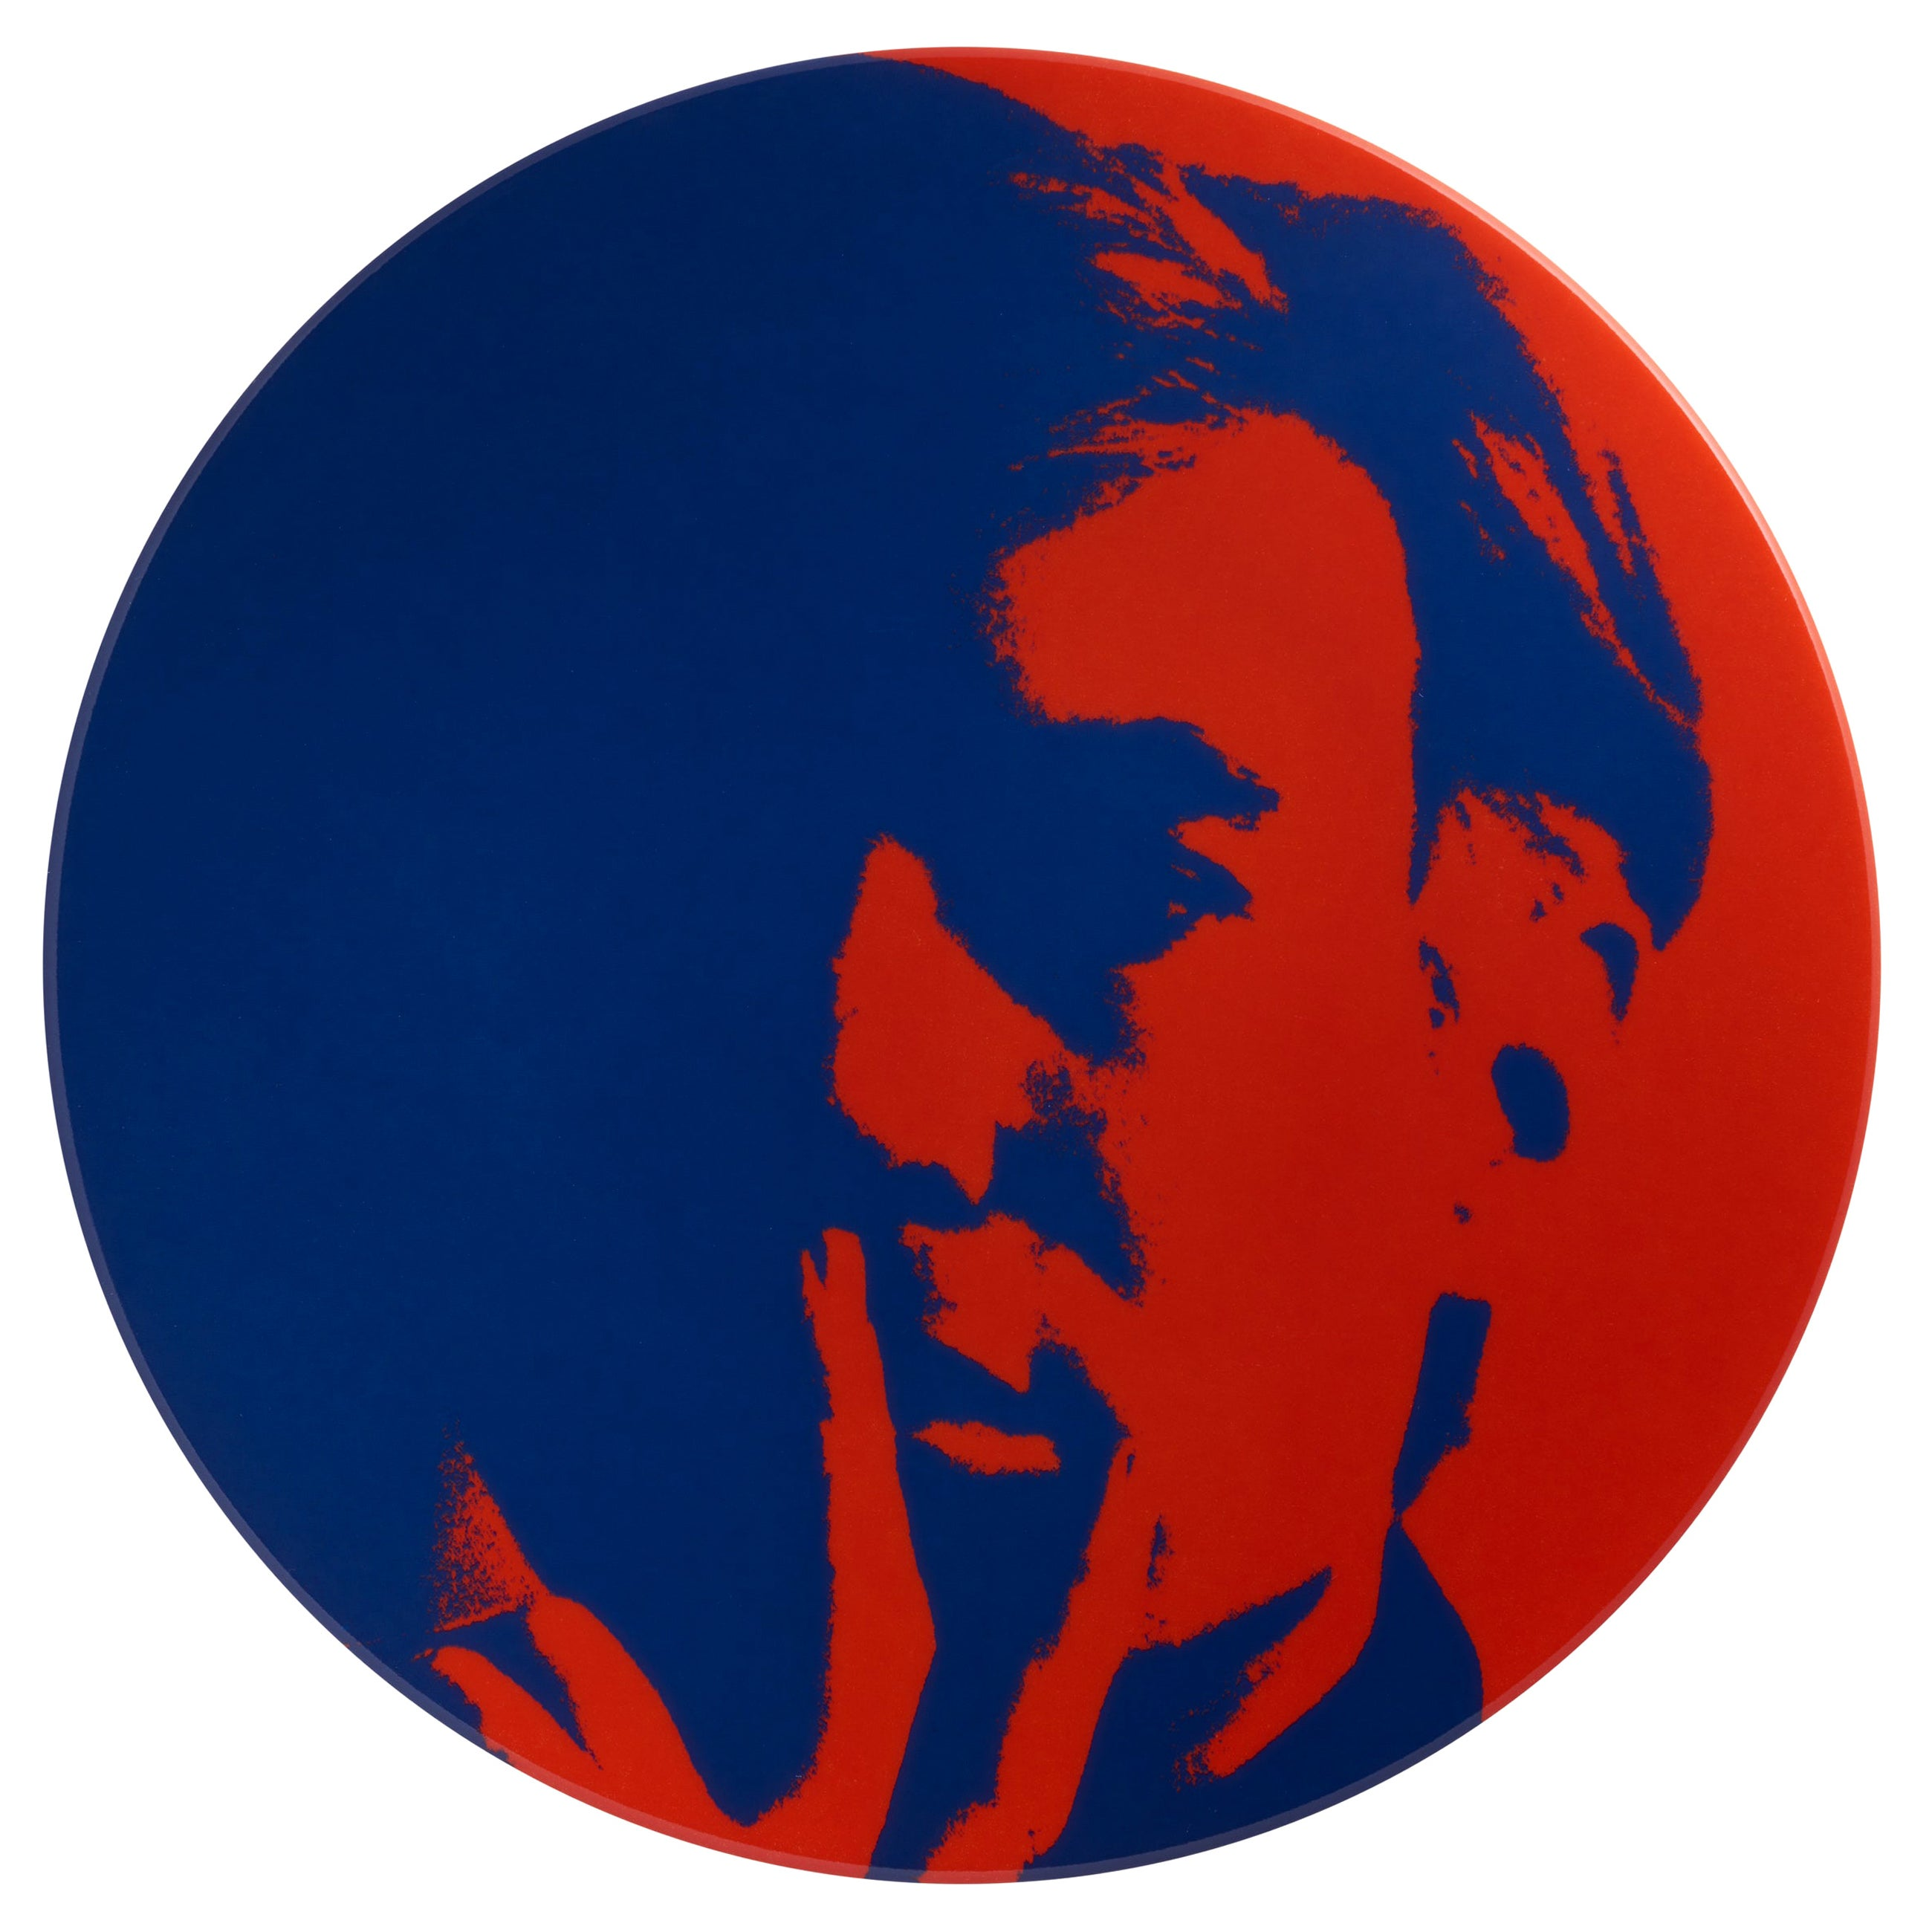 Self Portrait Plate, 'Red/Blue', After Andy Warhol